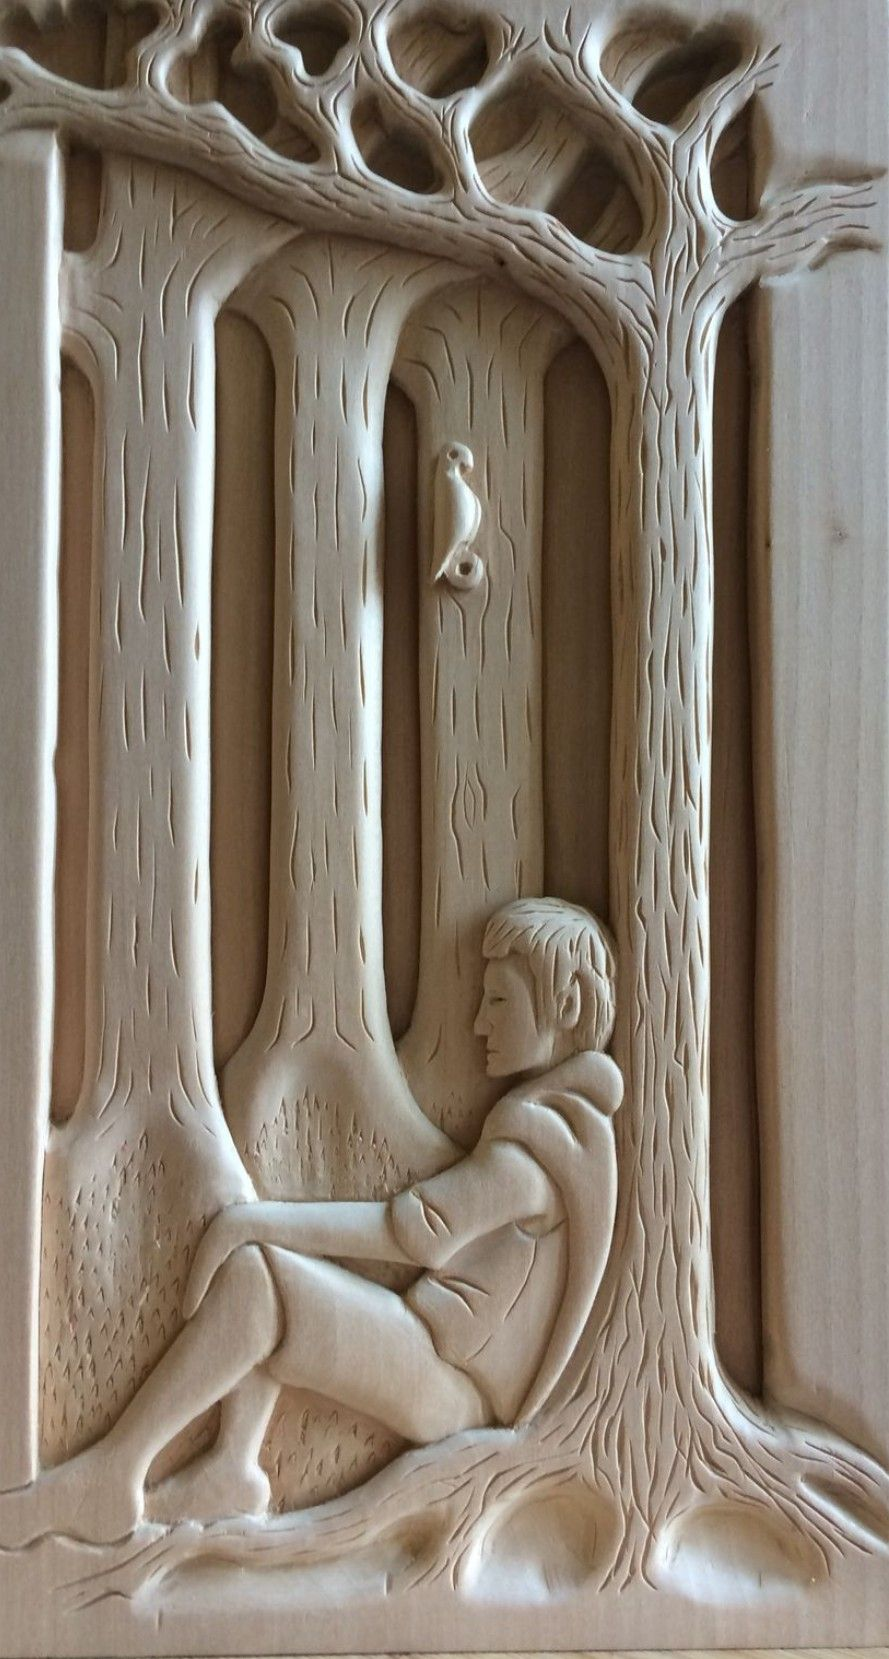 Pin By V On Wood Carving Wood Sculpture Art Wood Carving Art Ornamental Wood Carving